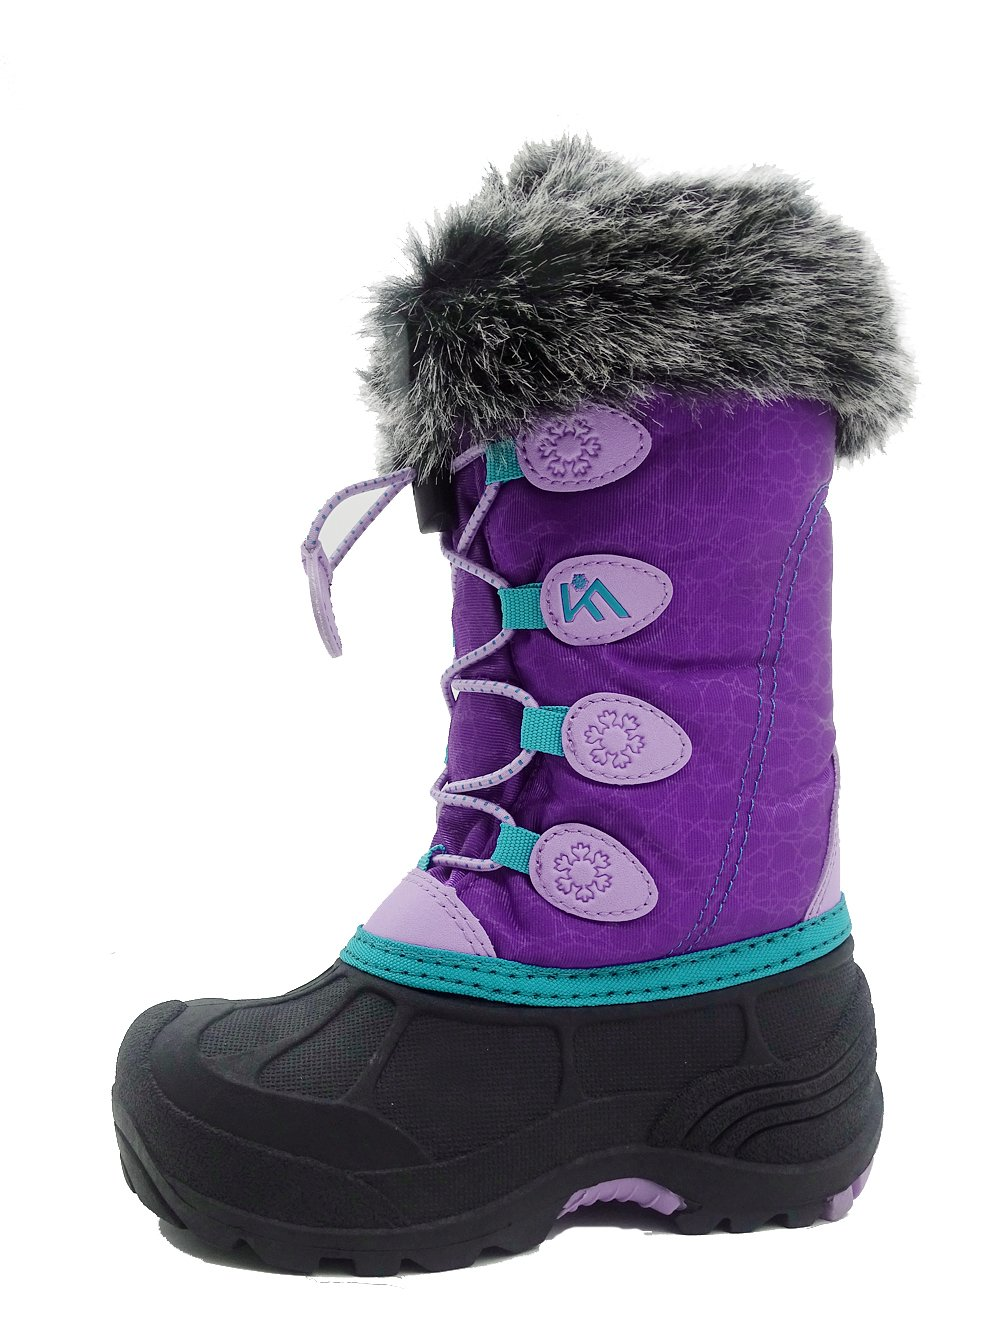 Kids Winter Snow Boots Waterproof and Insulated for Girls and Boys (4 M US Big Kid, Purple)